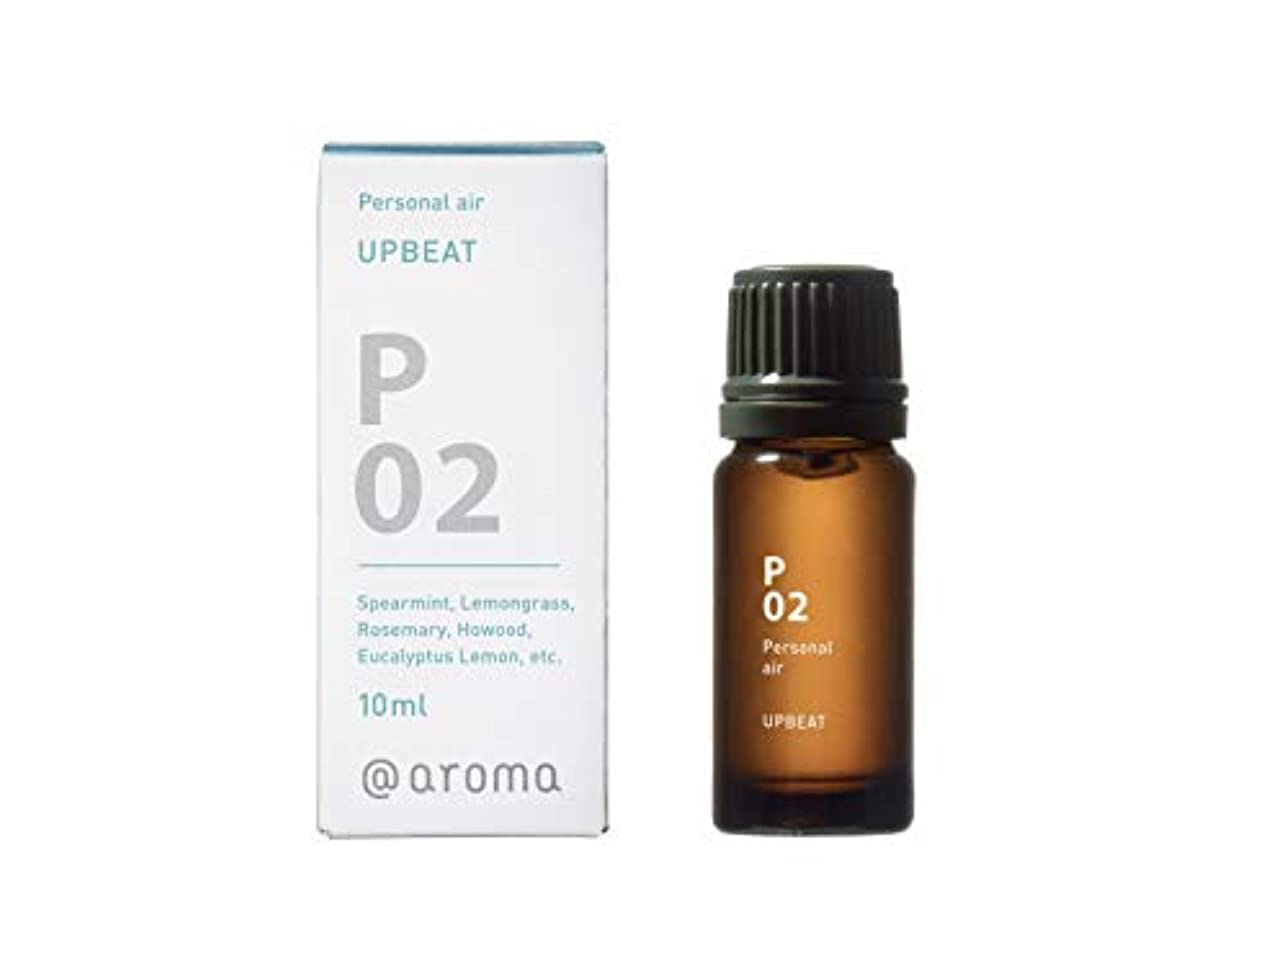 静的足首怪しいP02 UPBEAT Personal air 10ml